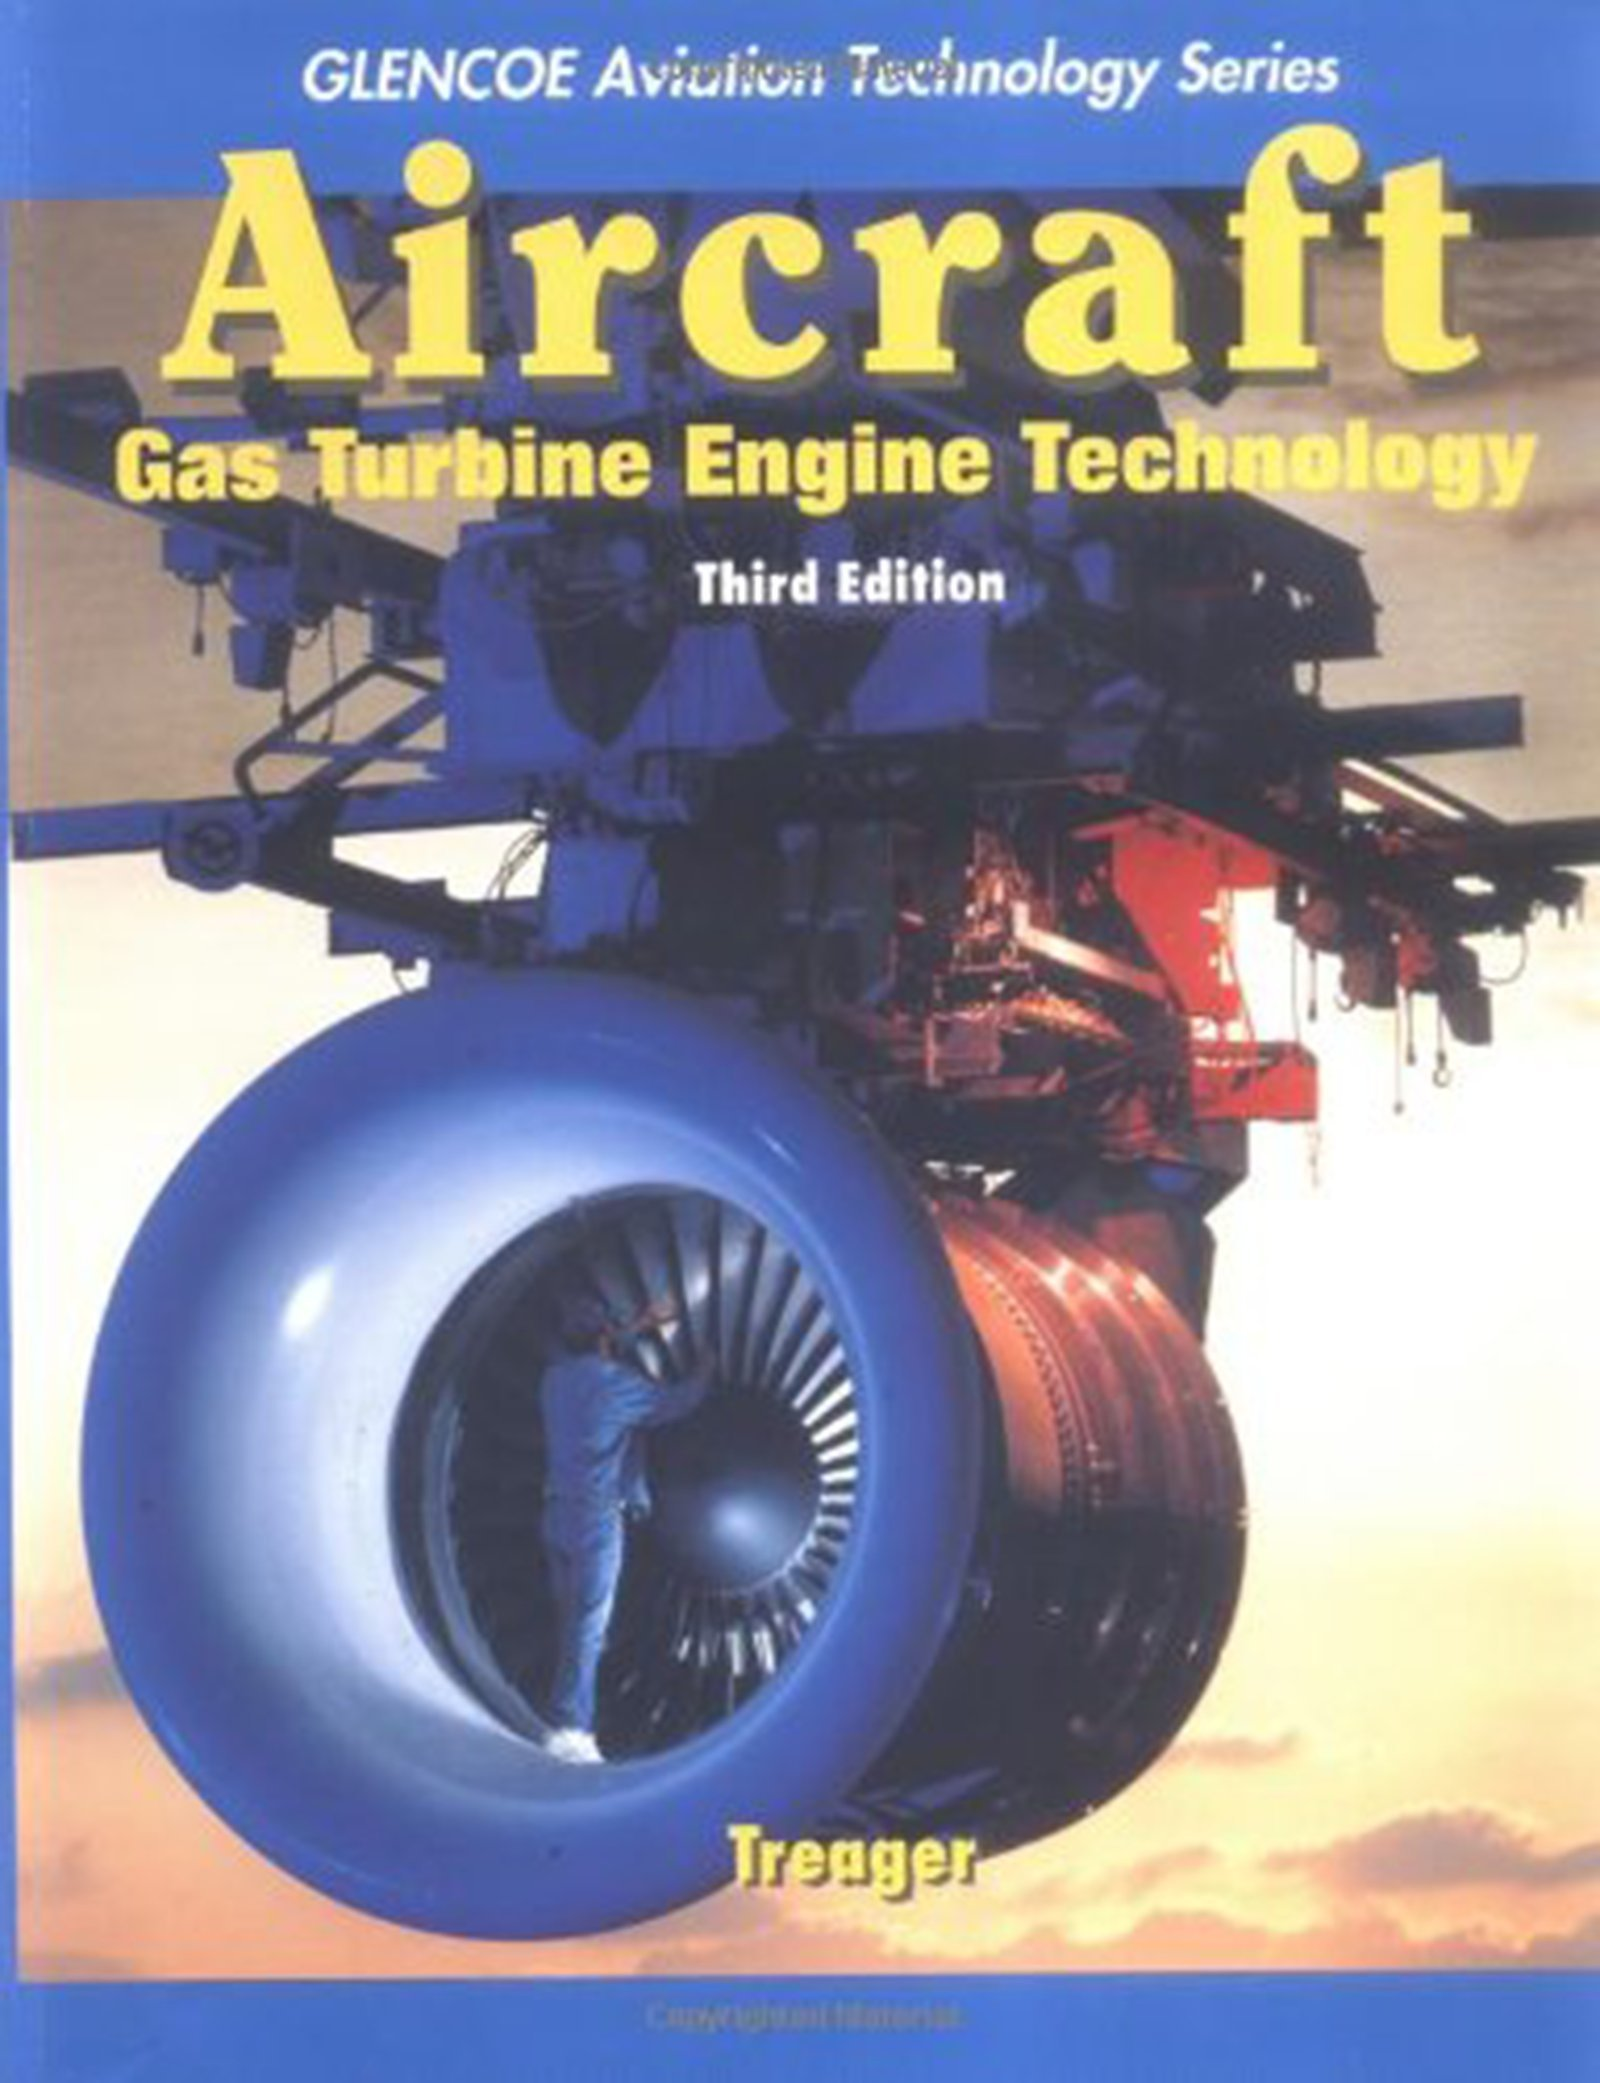 Aircraft Gas Turbine Engine Technology, 3rd Edition